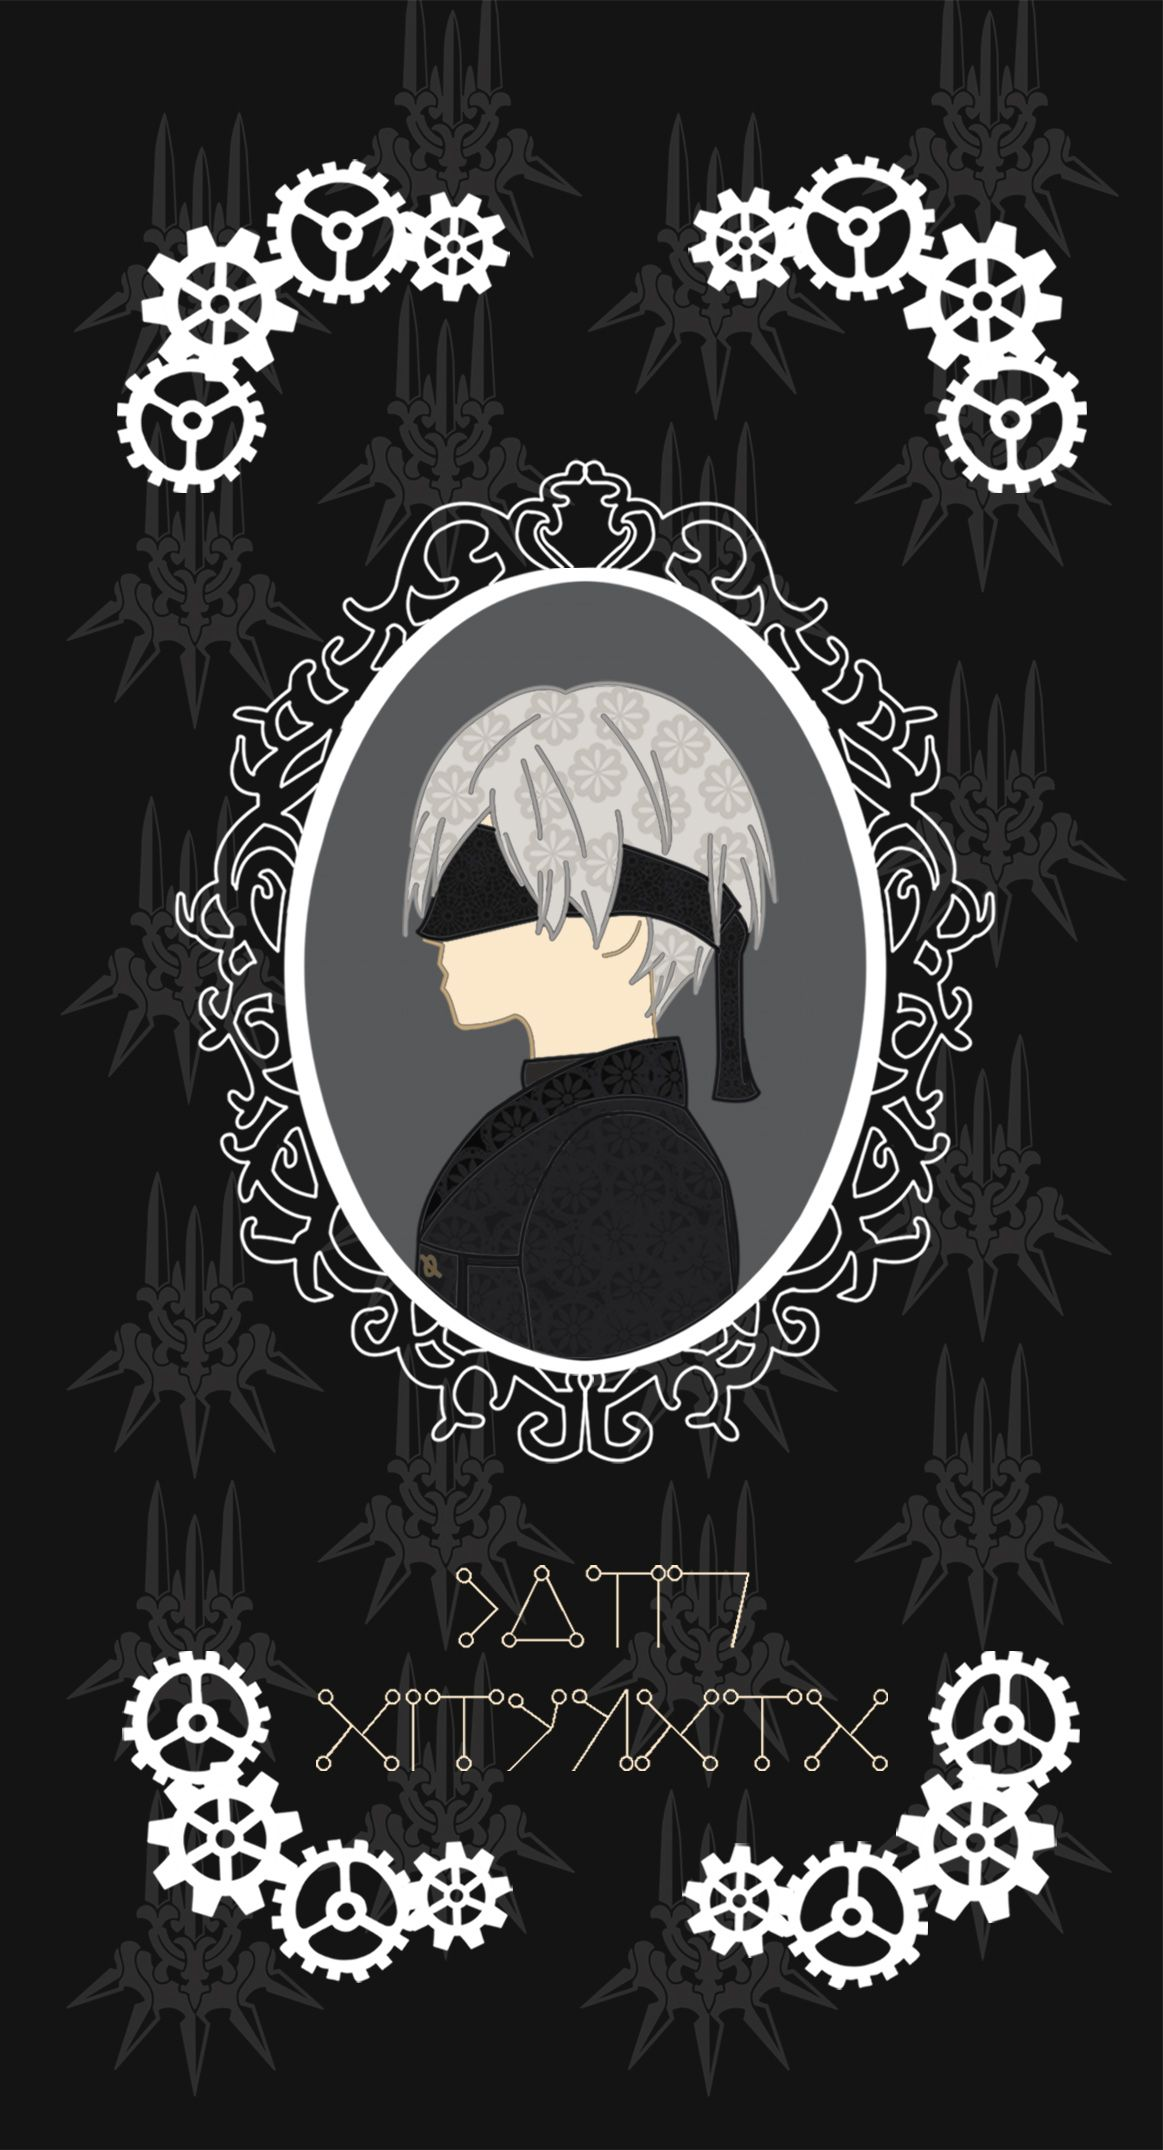 This Iphone Samsung Galaxy Phone Case Features A Portrait Of Android Unit 9s With A Baroque Style Frame The Yorha Log Nier Automata Android Wallpaper Automata